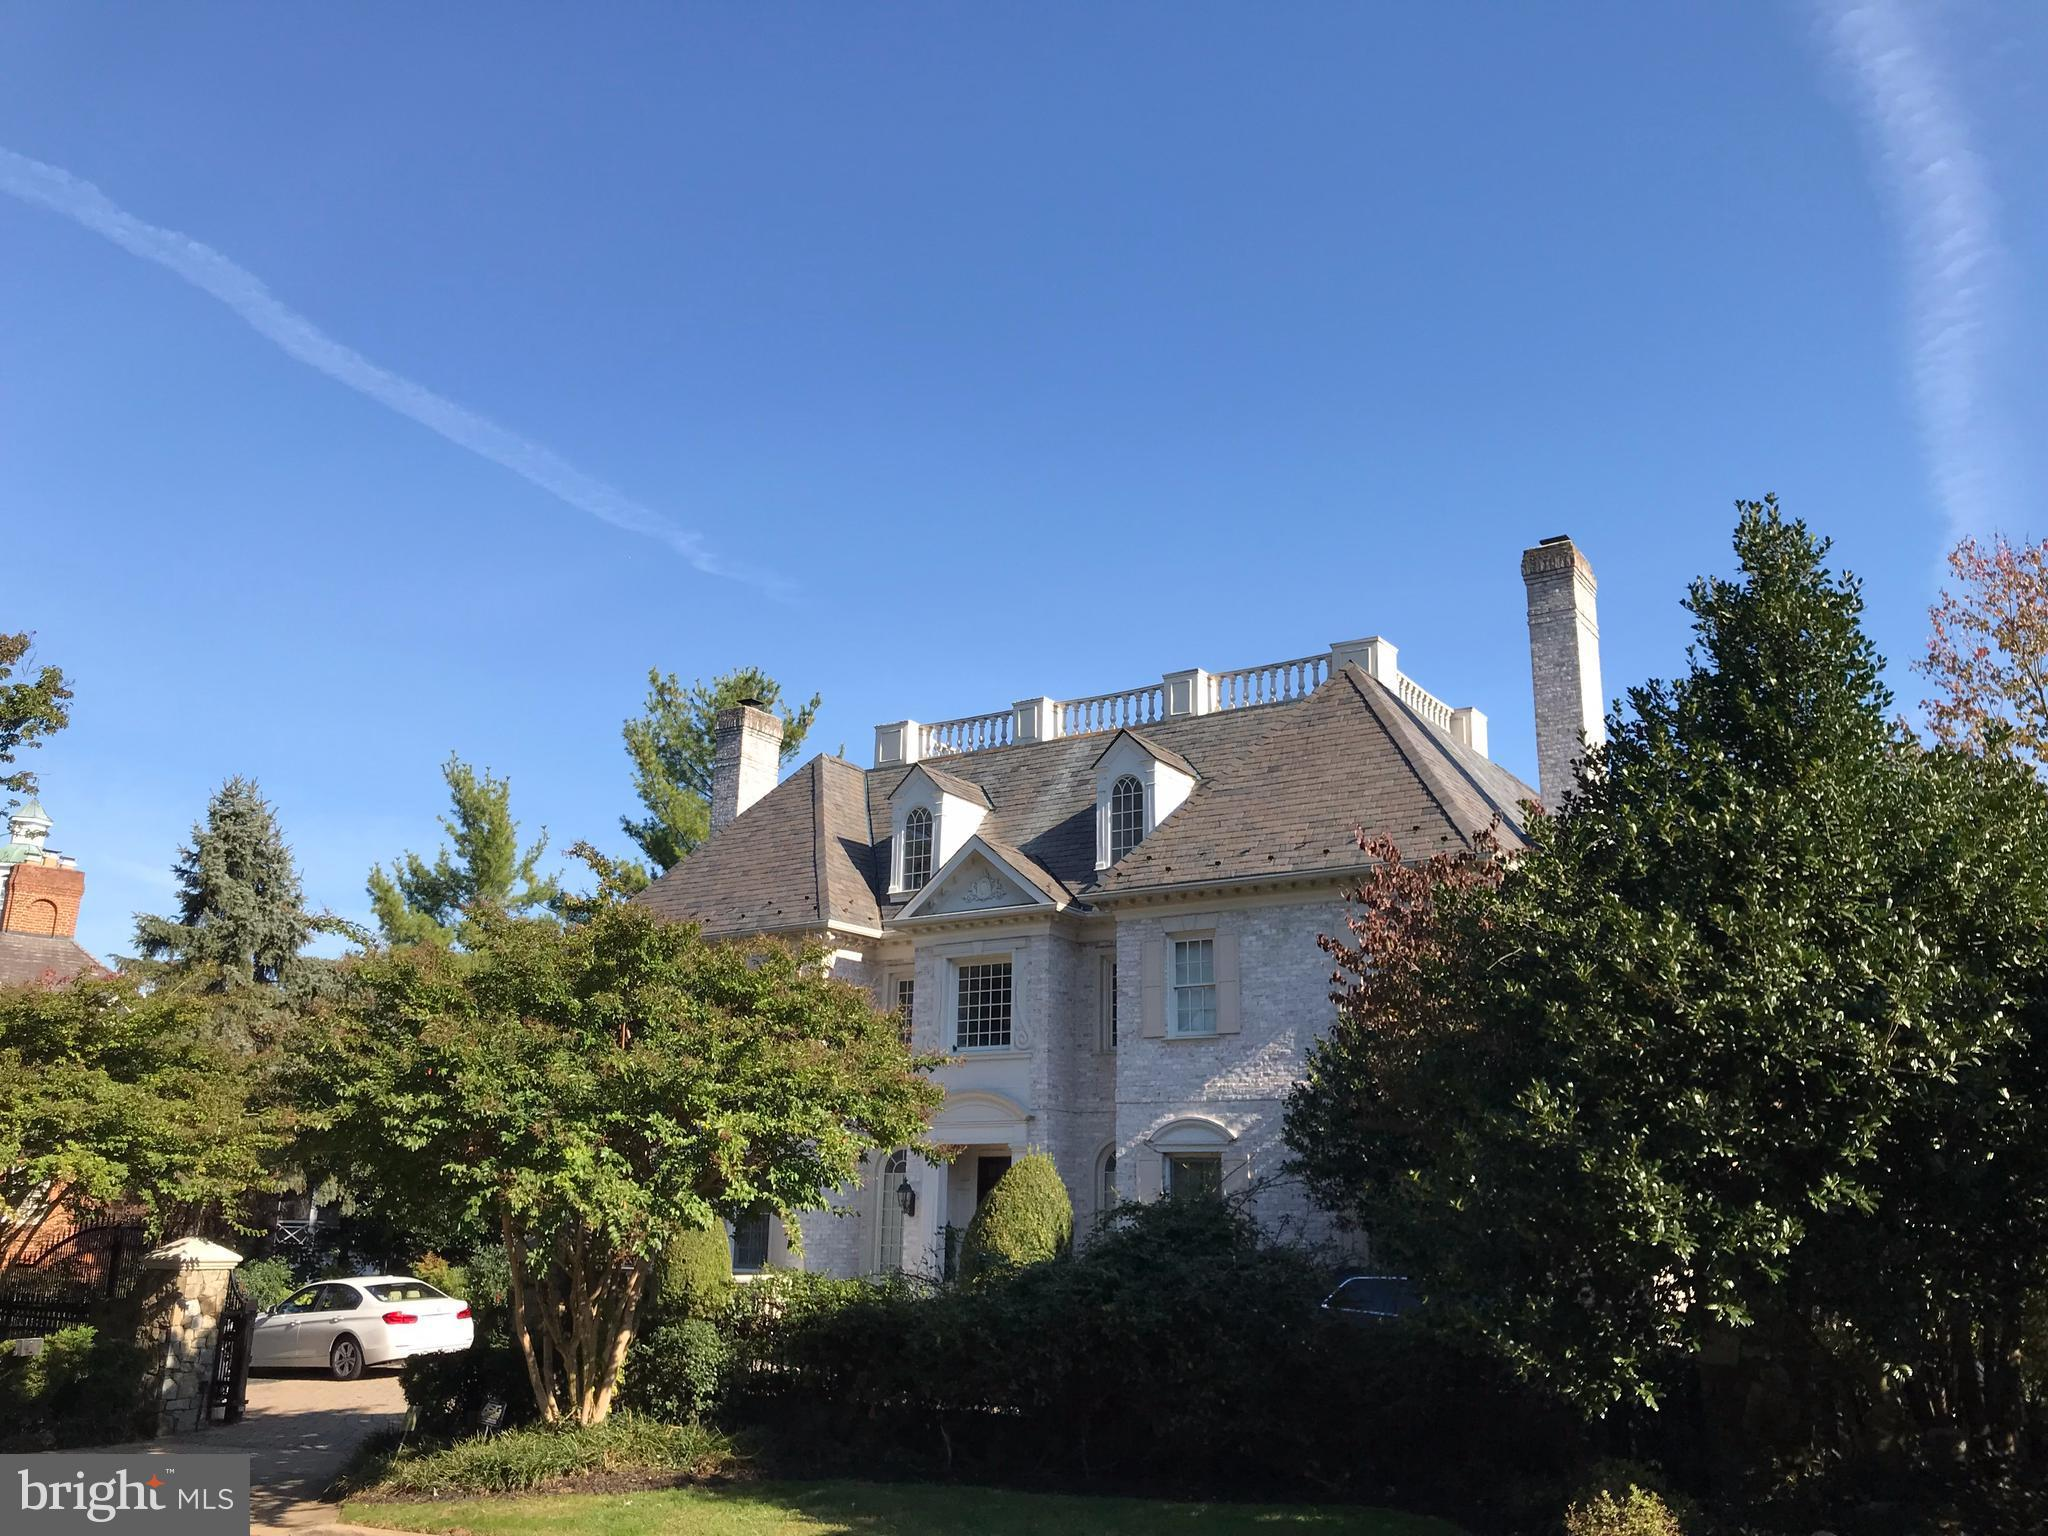 **FULLY FURNISHED BREATHTAKING MANSION IN PRESTIGIOUS BALLANTRAE FARM**ELEVATOR**minutes to DC, 66 & 495 ..Luxurious in every aspect.rare to find, great for entertainment**2 story marble foyer, wood panelled walls, cherry wood cabinet in library, in-laws suite,2 washers & 2 dryers, walk out basement 2nd kitchens & much More.***COULD BE RENTED SHORT TERM for higher price. Could be leased for up to 4 years